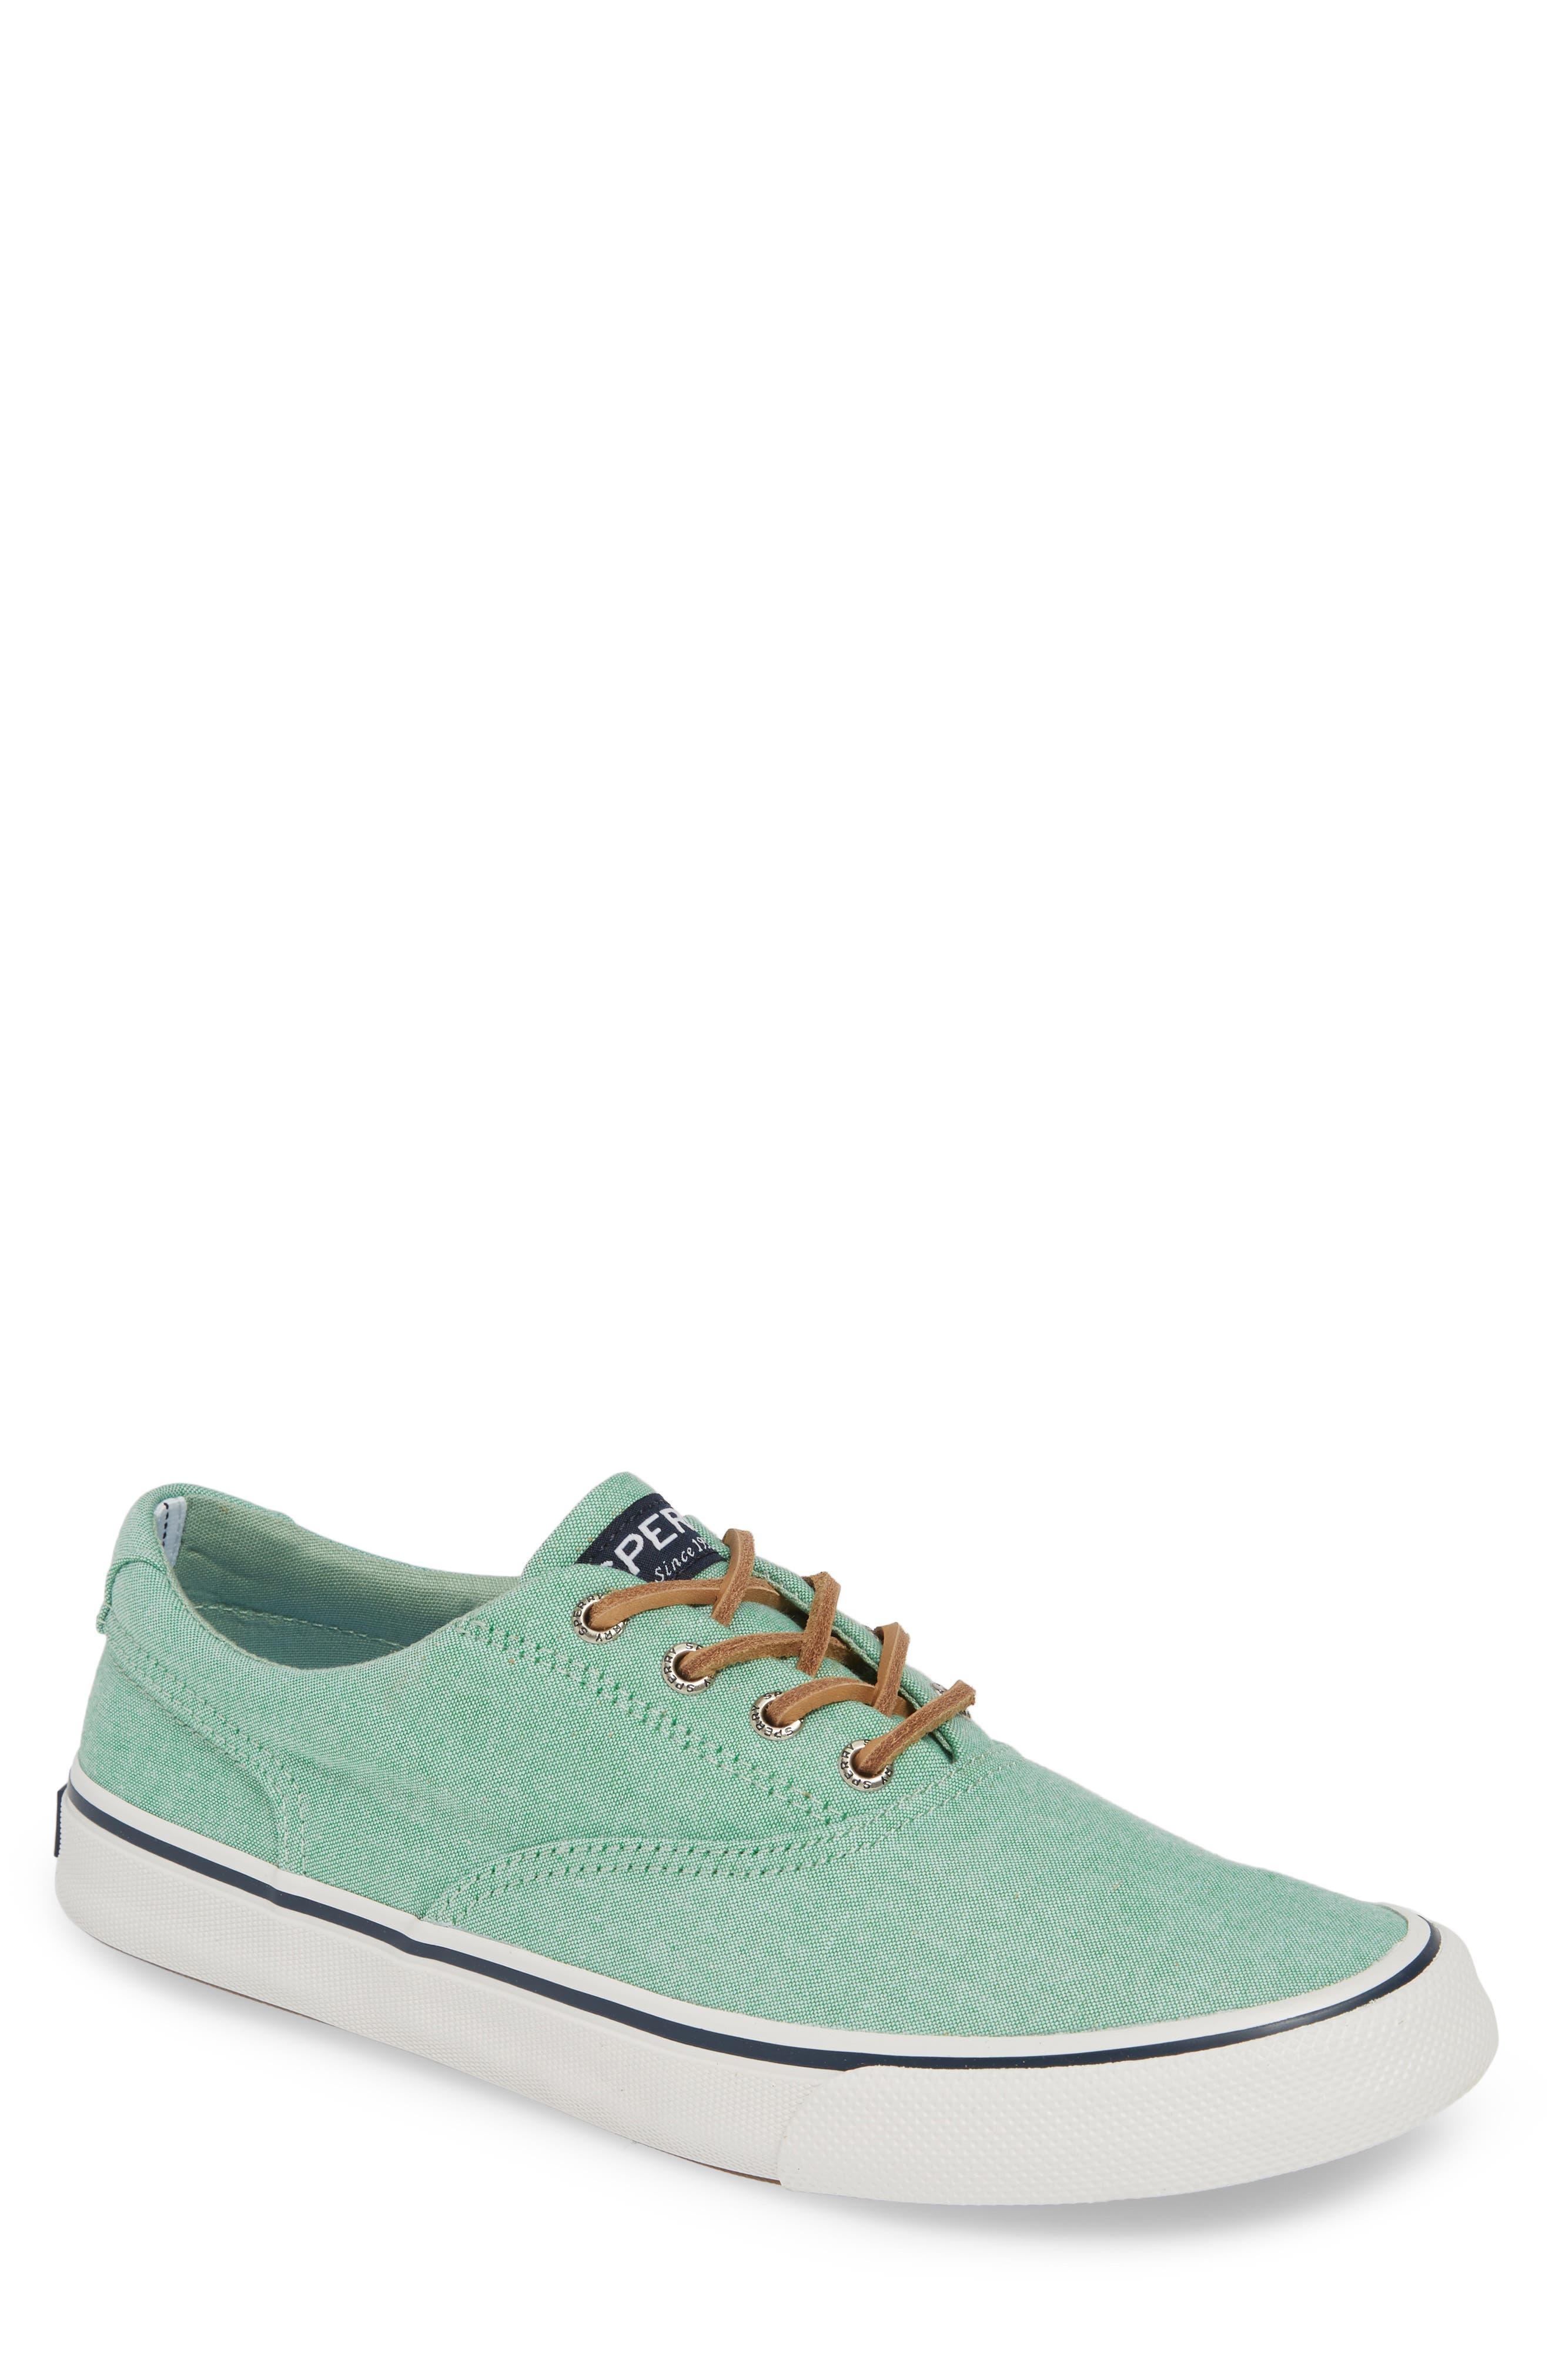 SPERRY Striper II CVO Oxford Sneaker, Main, color, GREEN